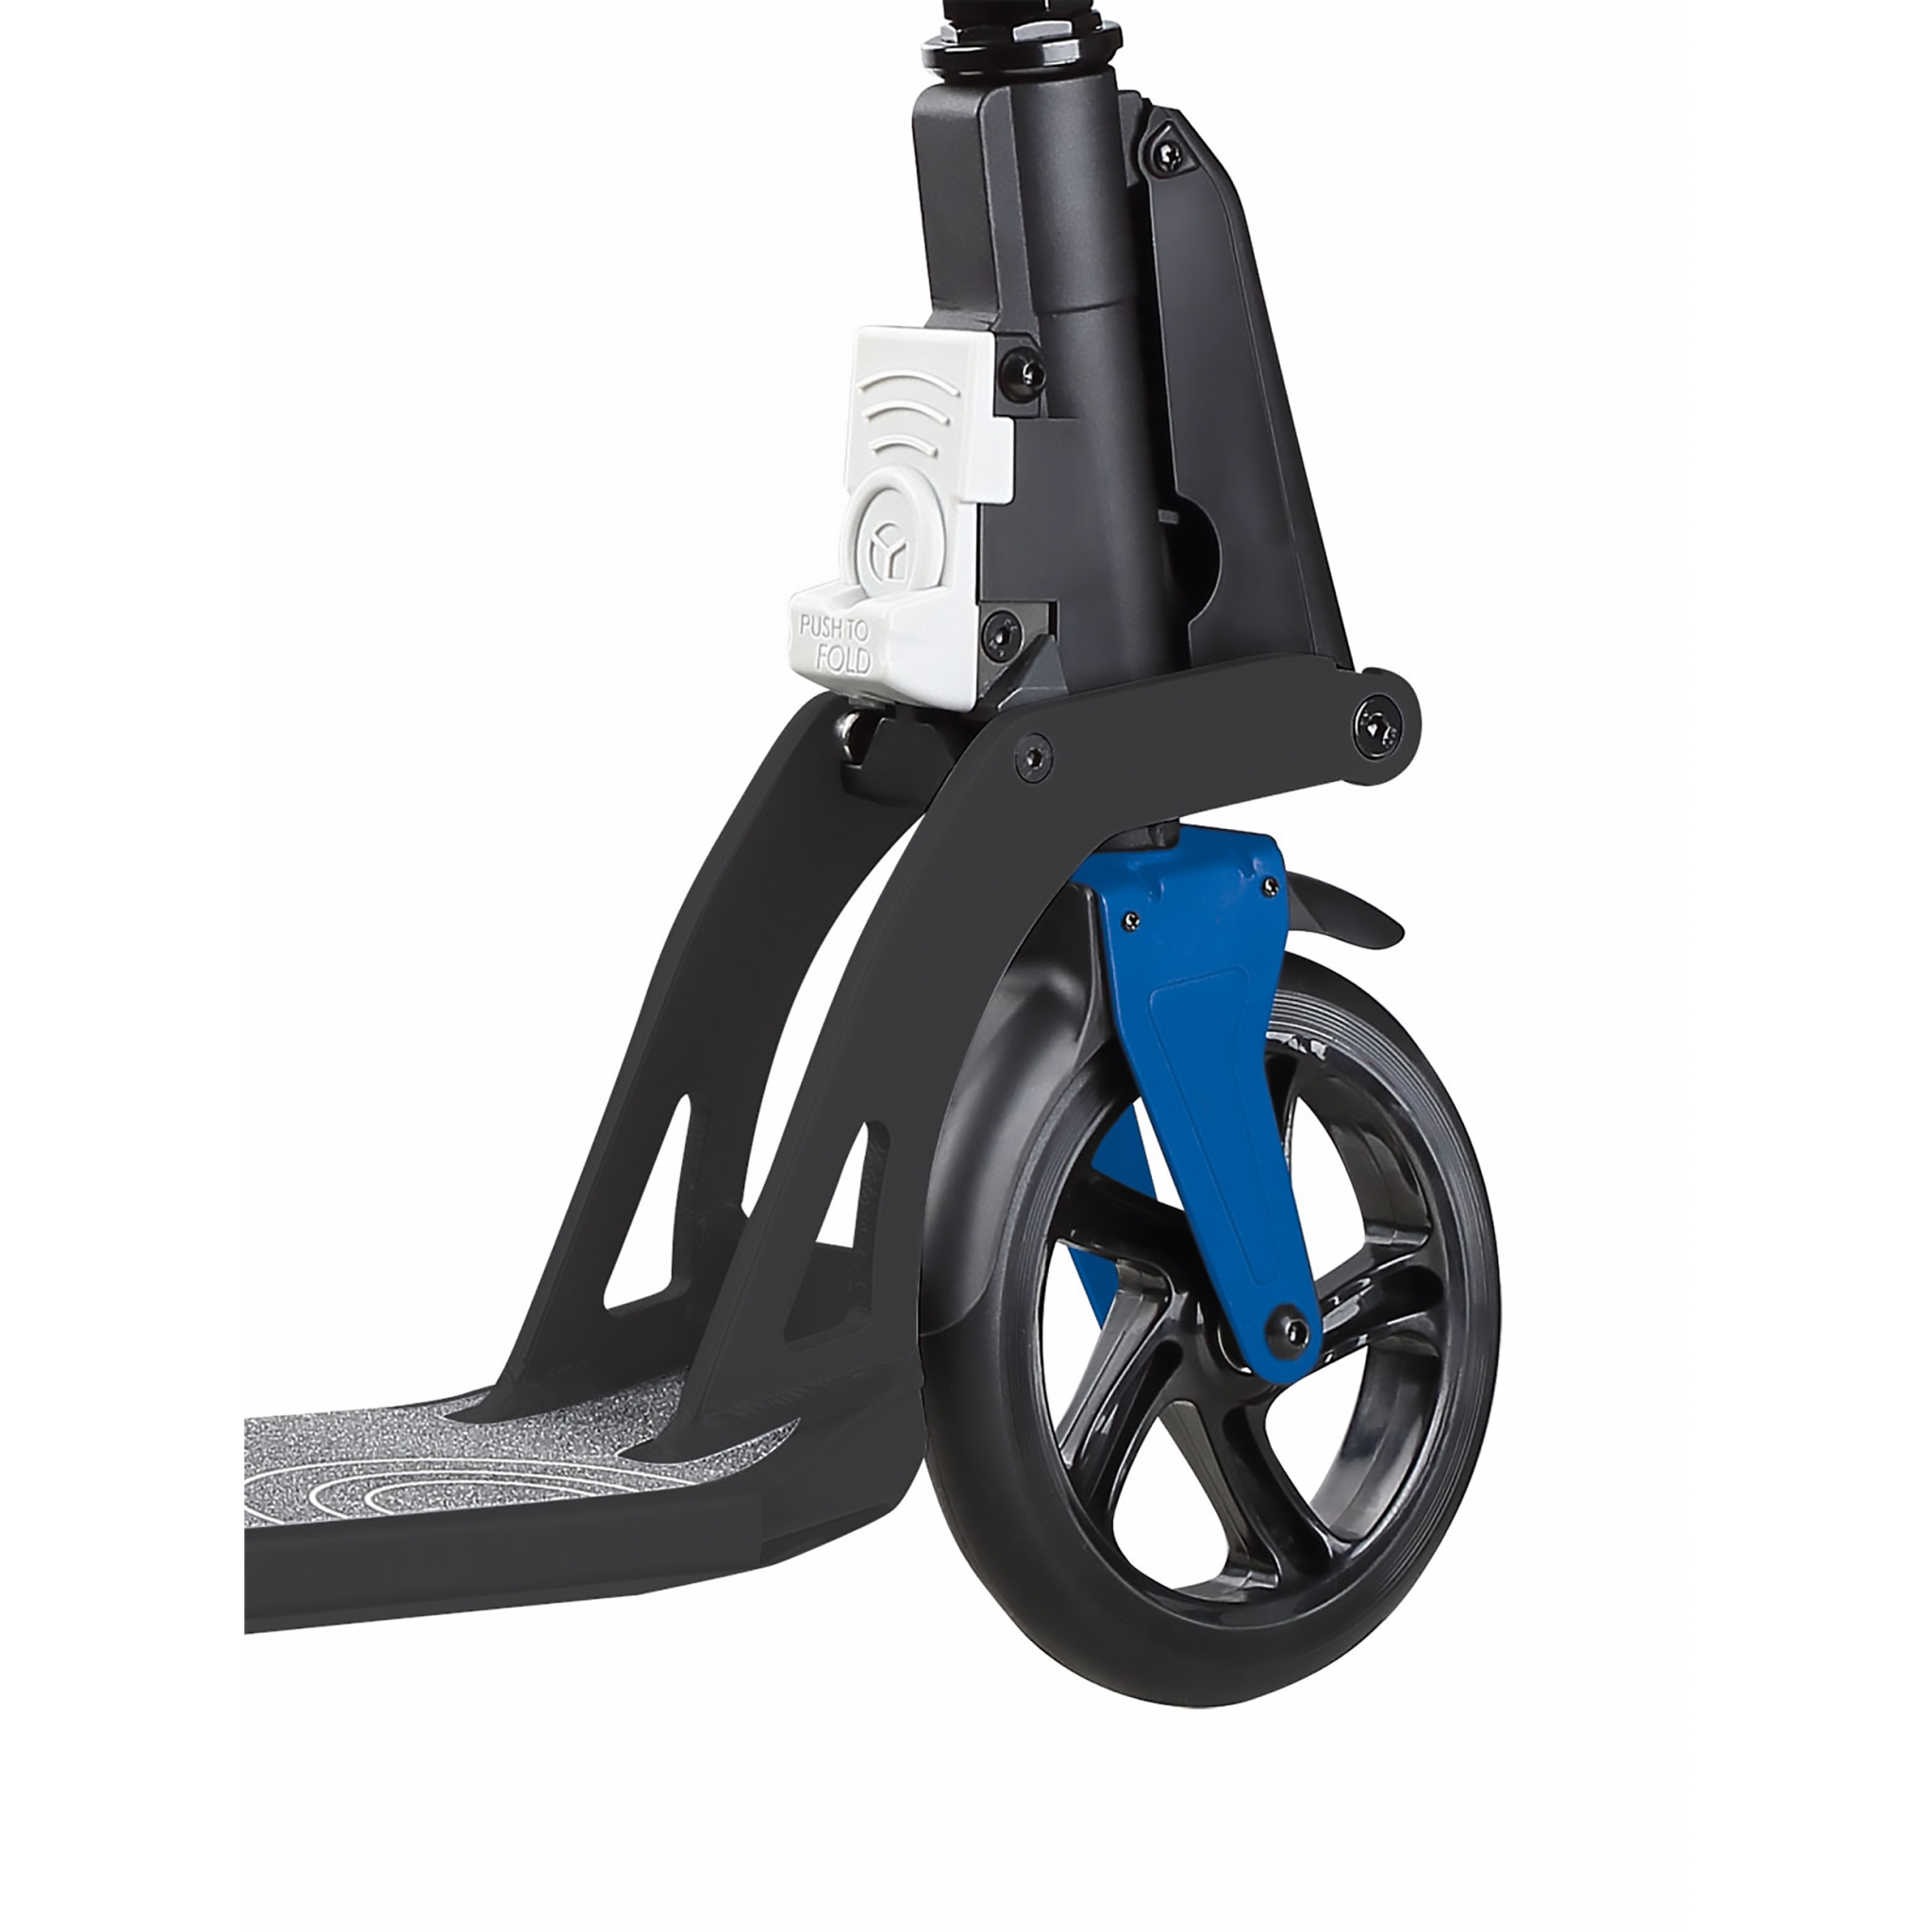 foldable scooter for adults with handbrake - Globber ONE K 180 BR 1